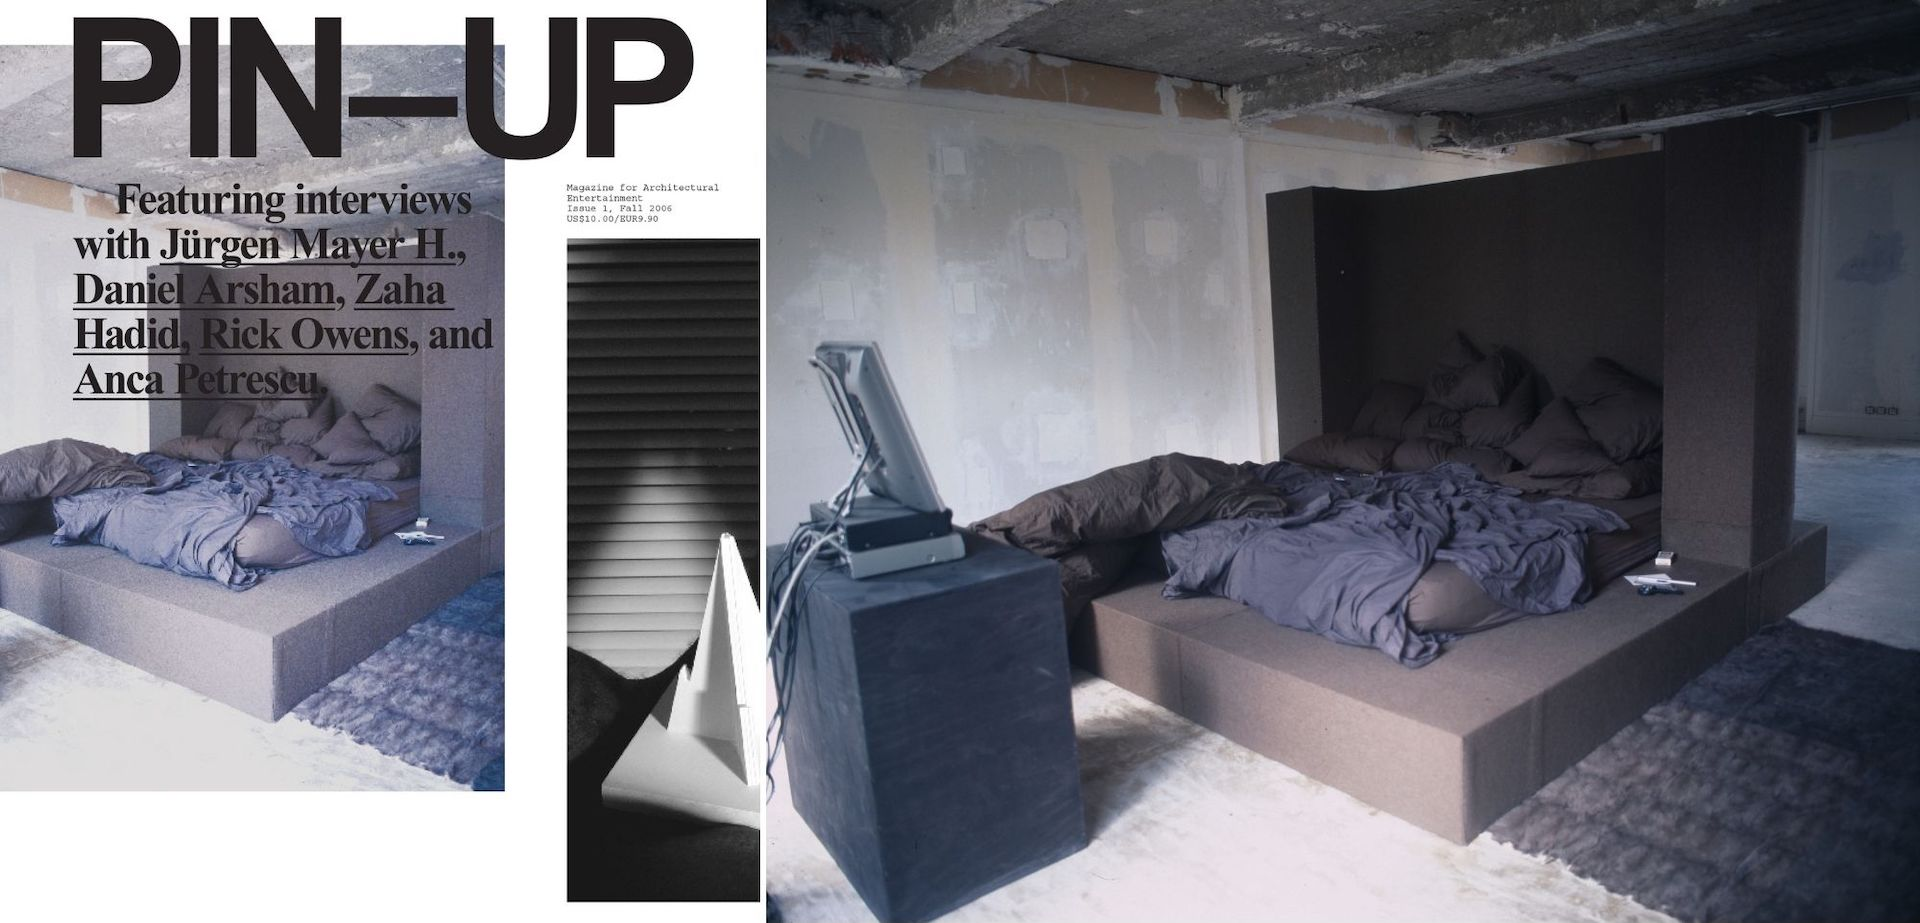 The first cover of PIN–UP magazine, Fall Winter 2006/07   View of Rick Owens' bedroom in his private Paris home, c. 2006. Photo © Assaf Shoshan for PIN–UP